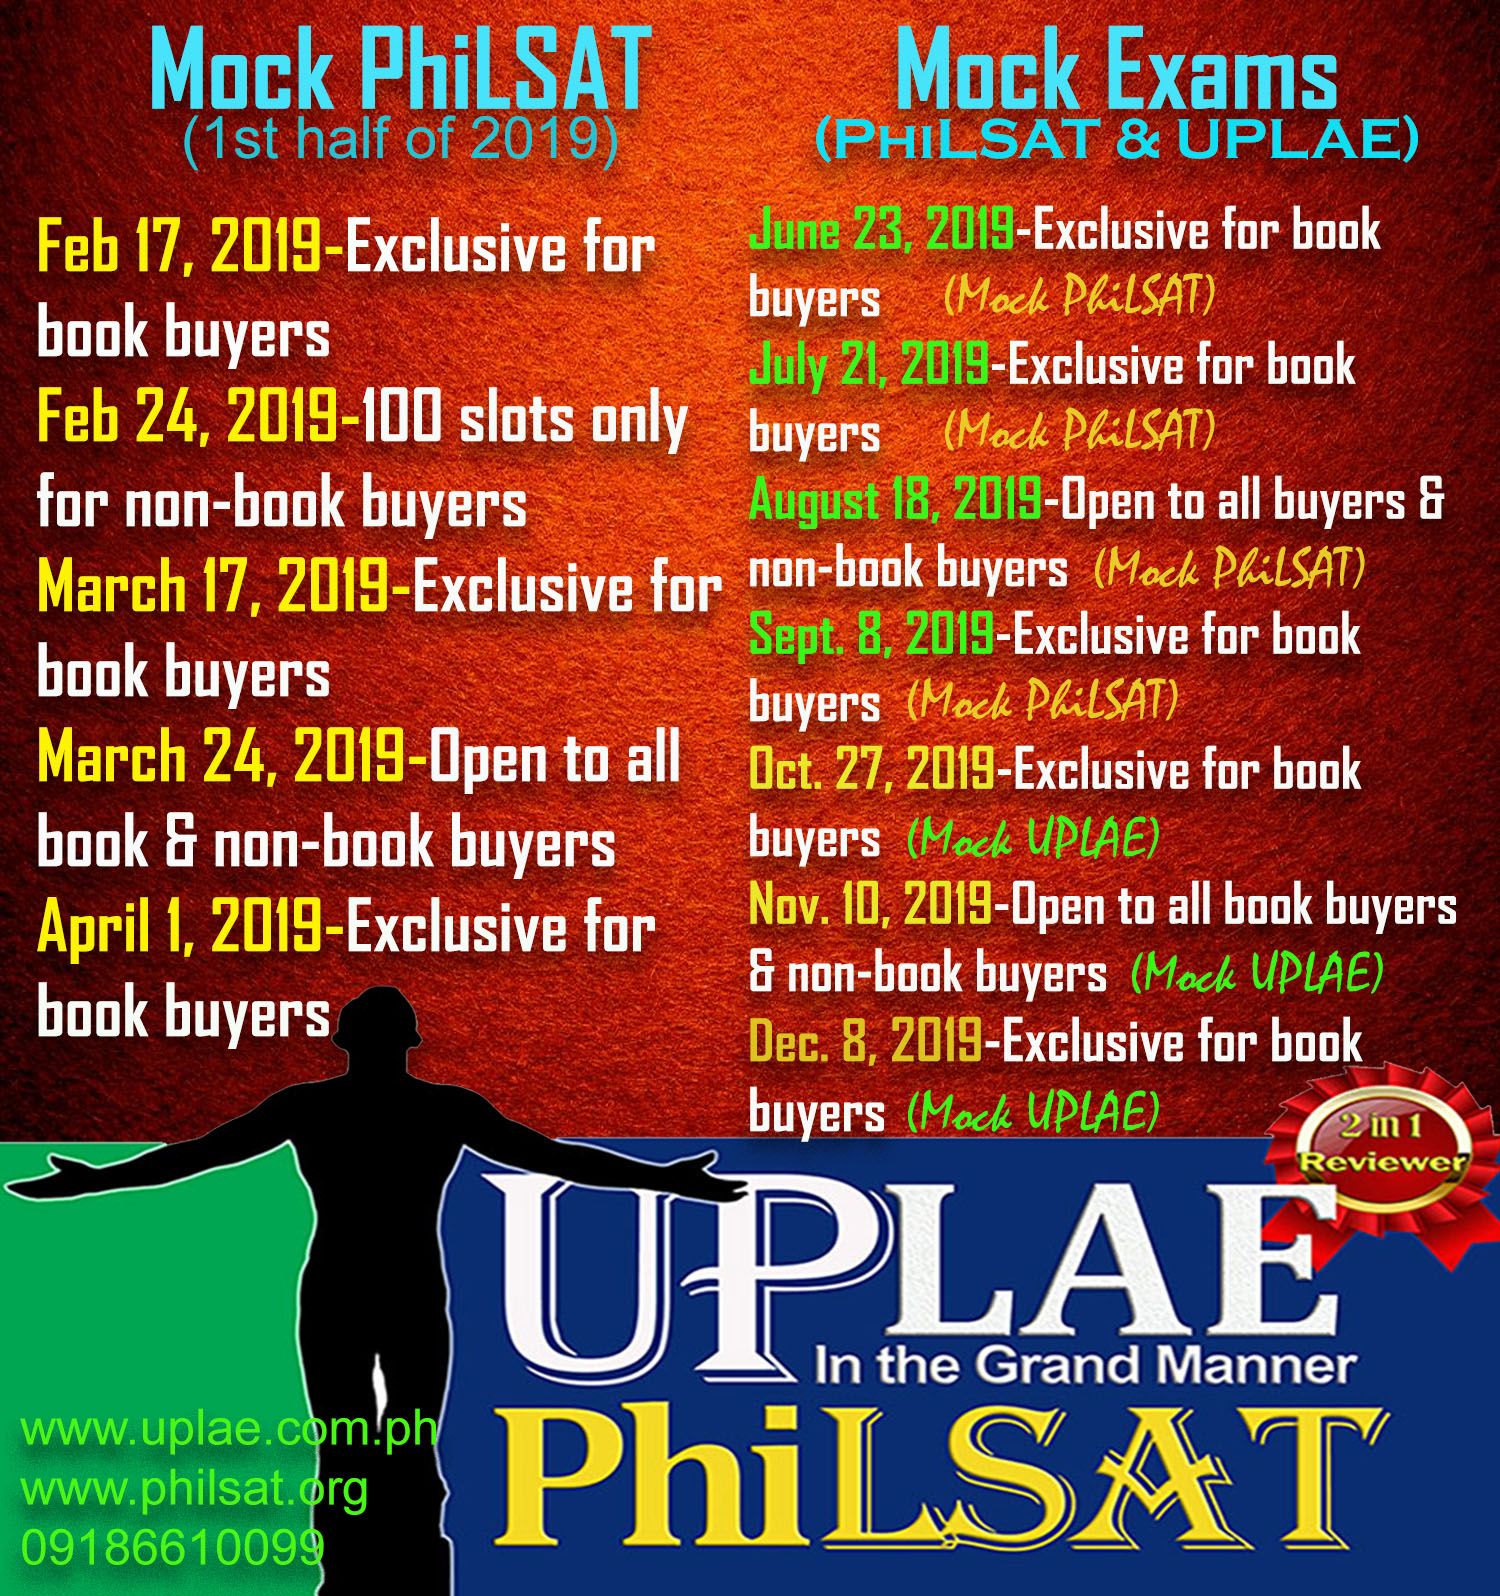 UPLAE & PhiLSAT Reviewer 2-in-1